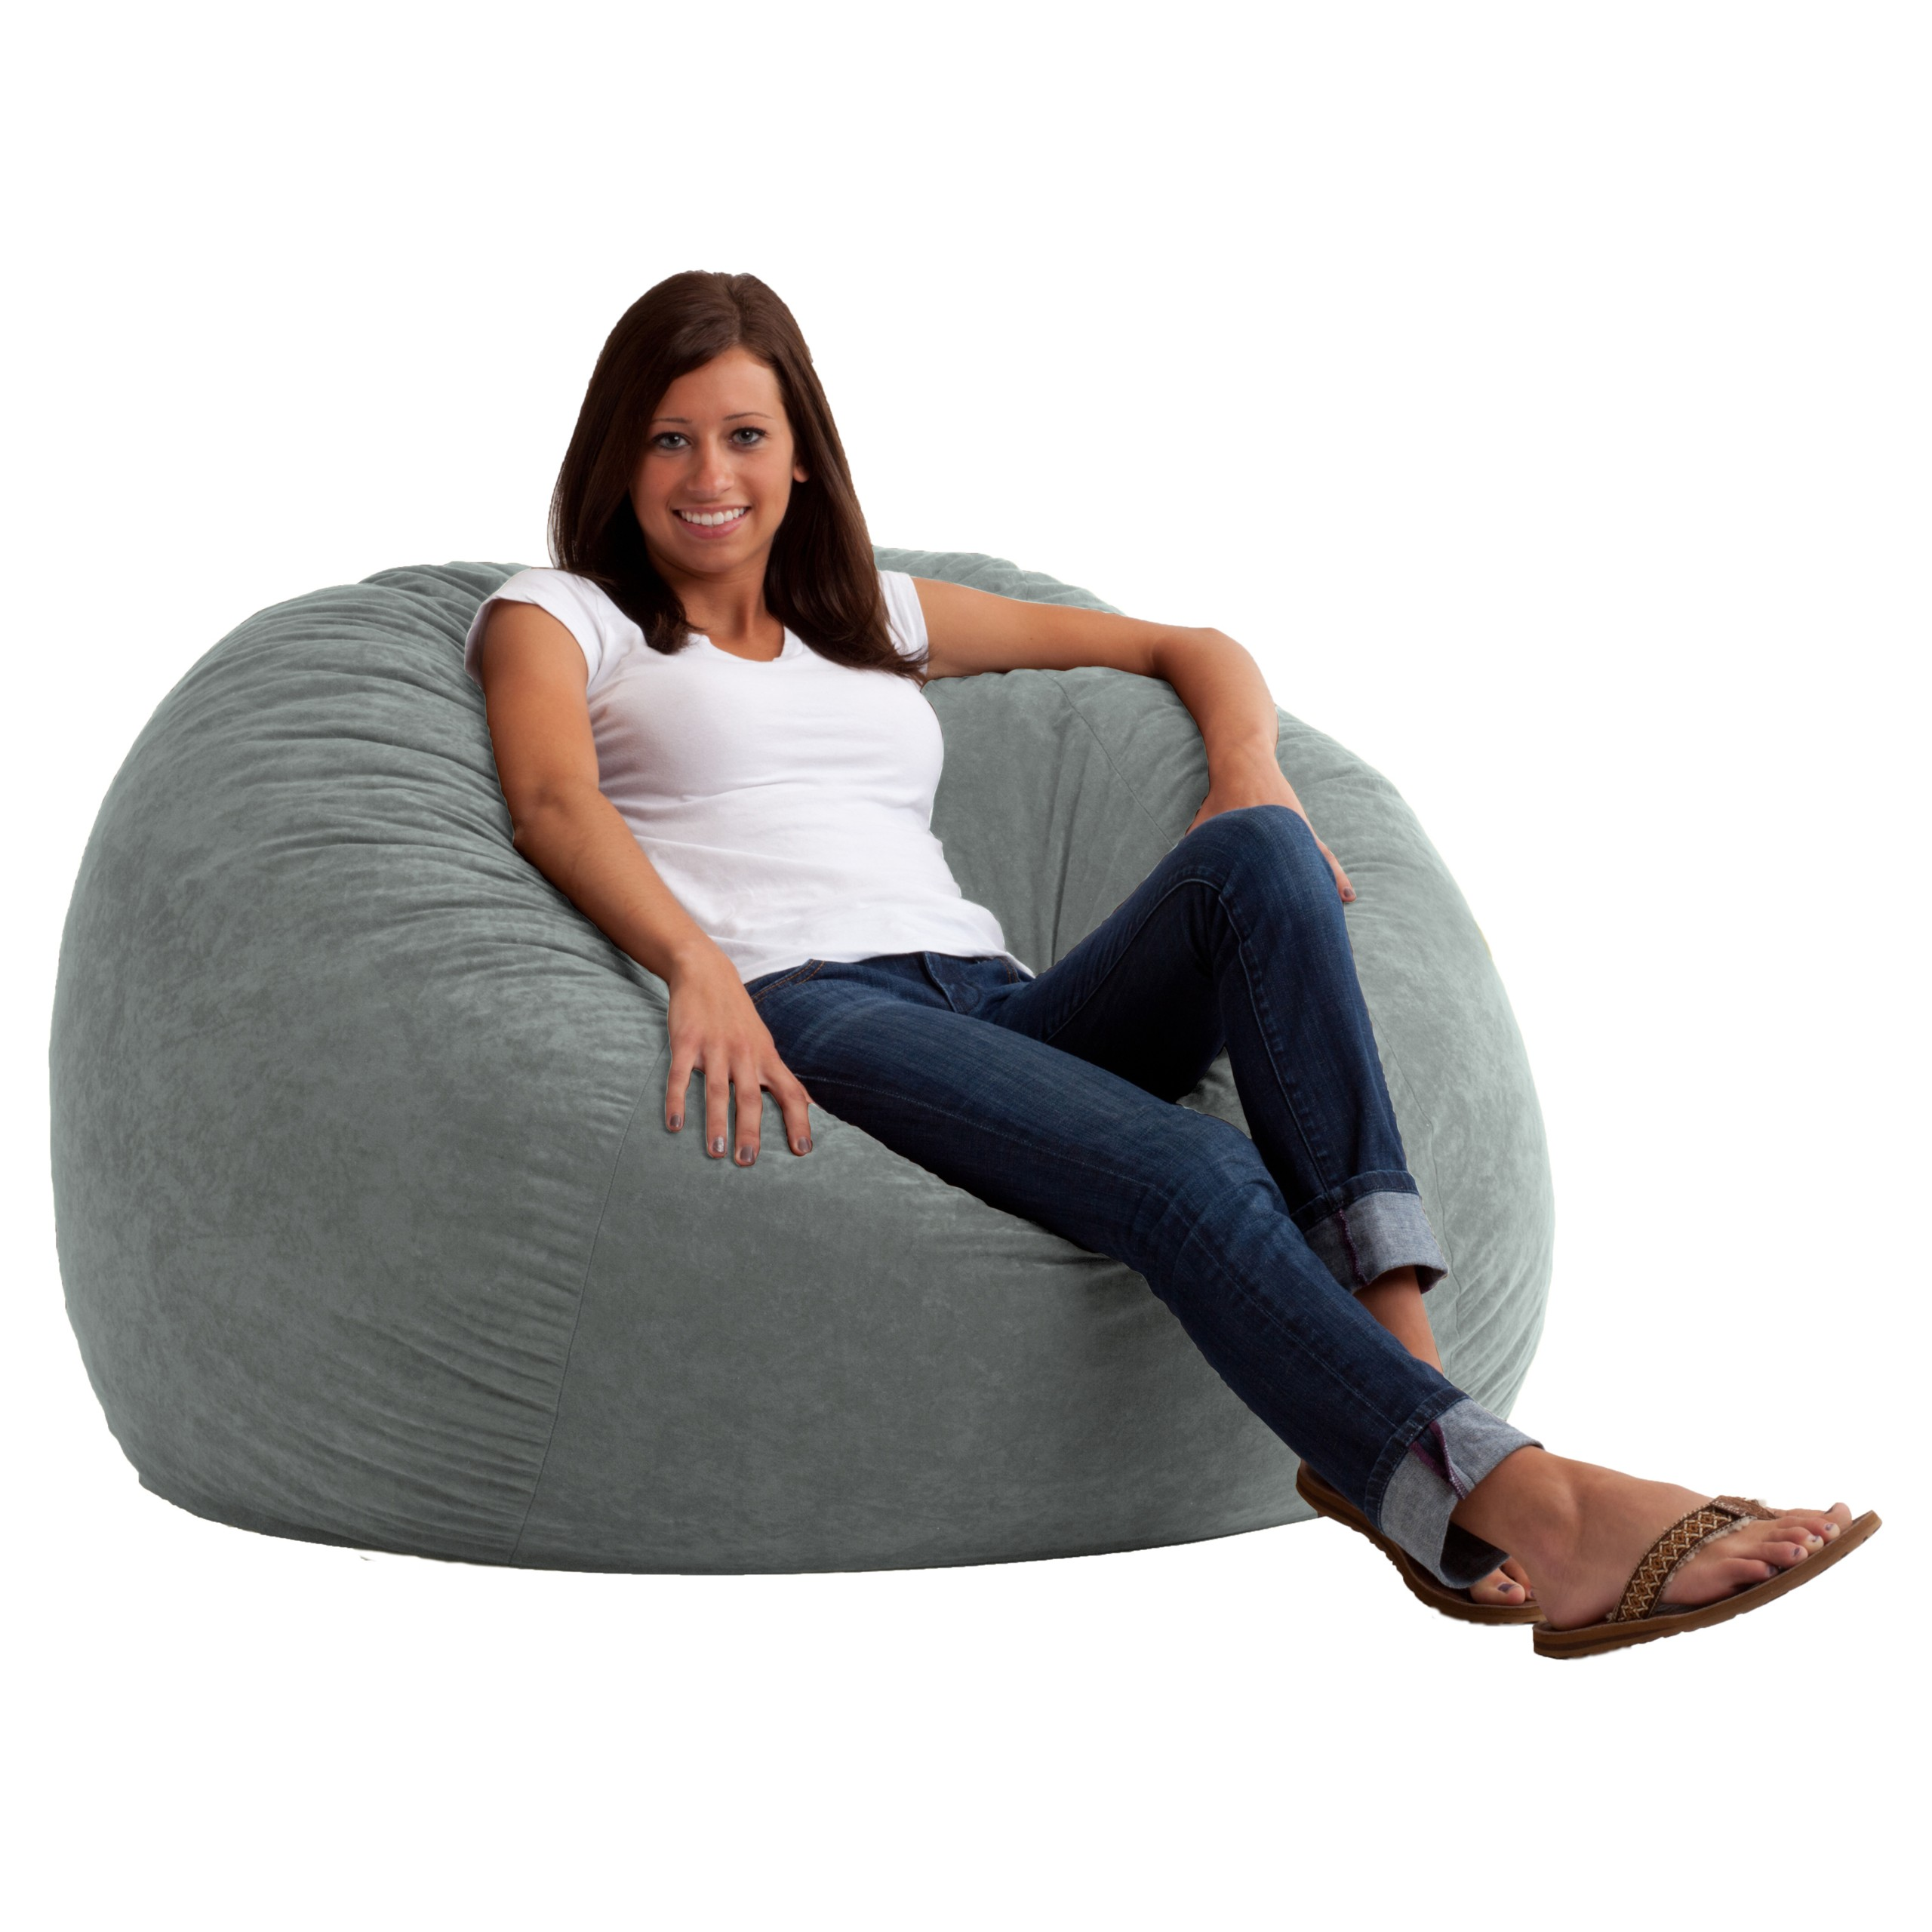 Large 4u0027 Fuf Comfort Suede Bean Bag Chair Black Onyx   Soft Durable  Comfortable Seating